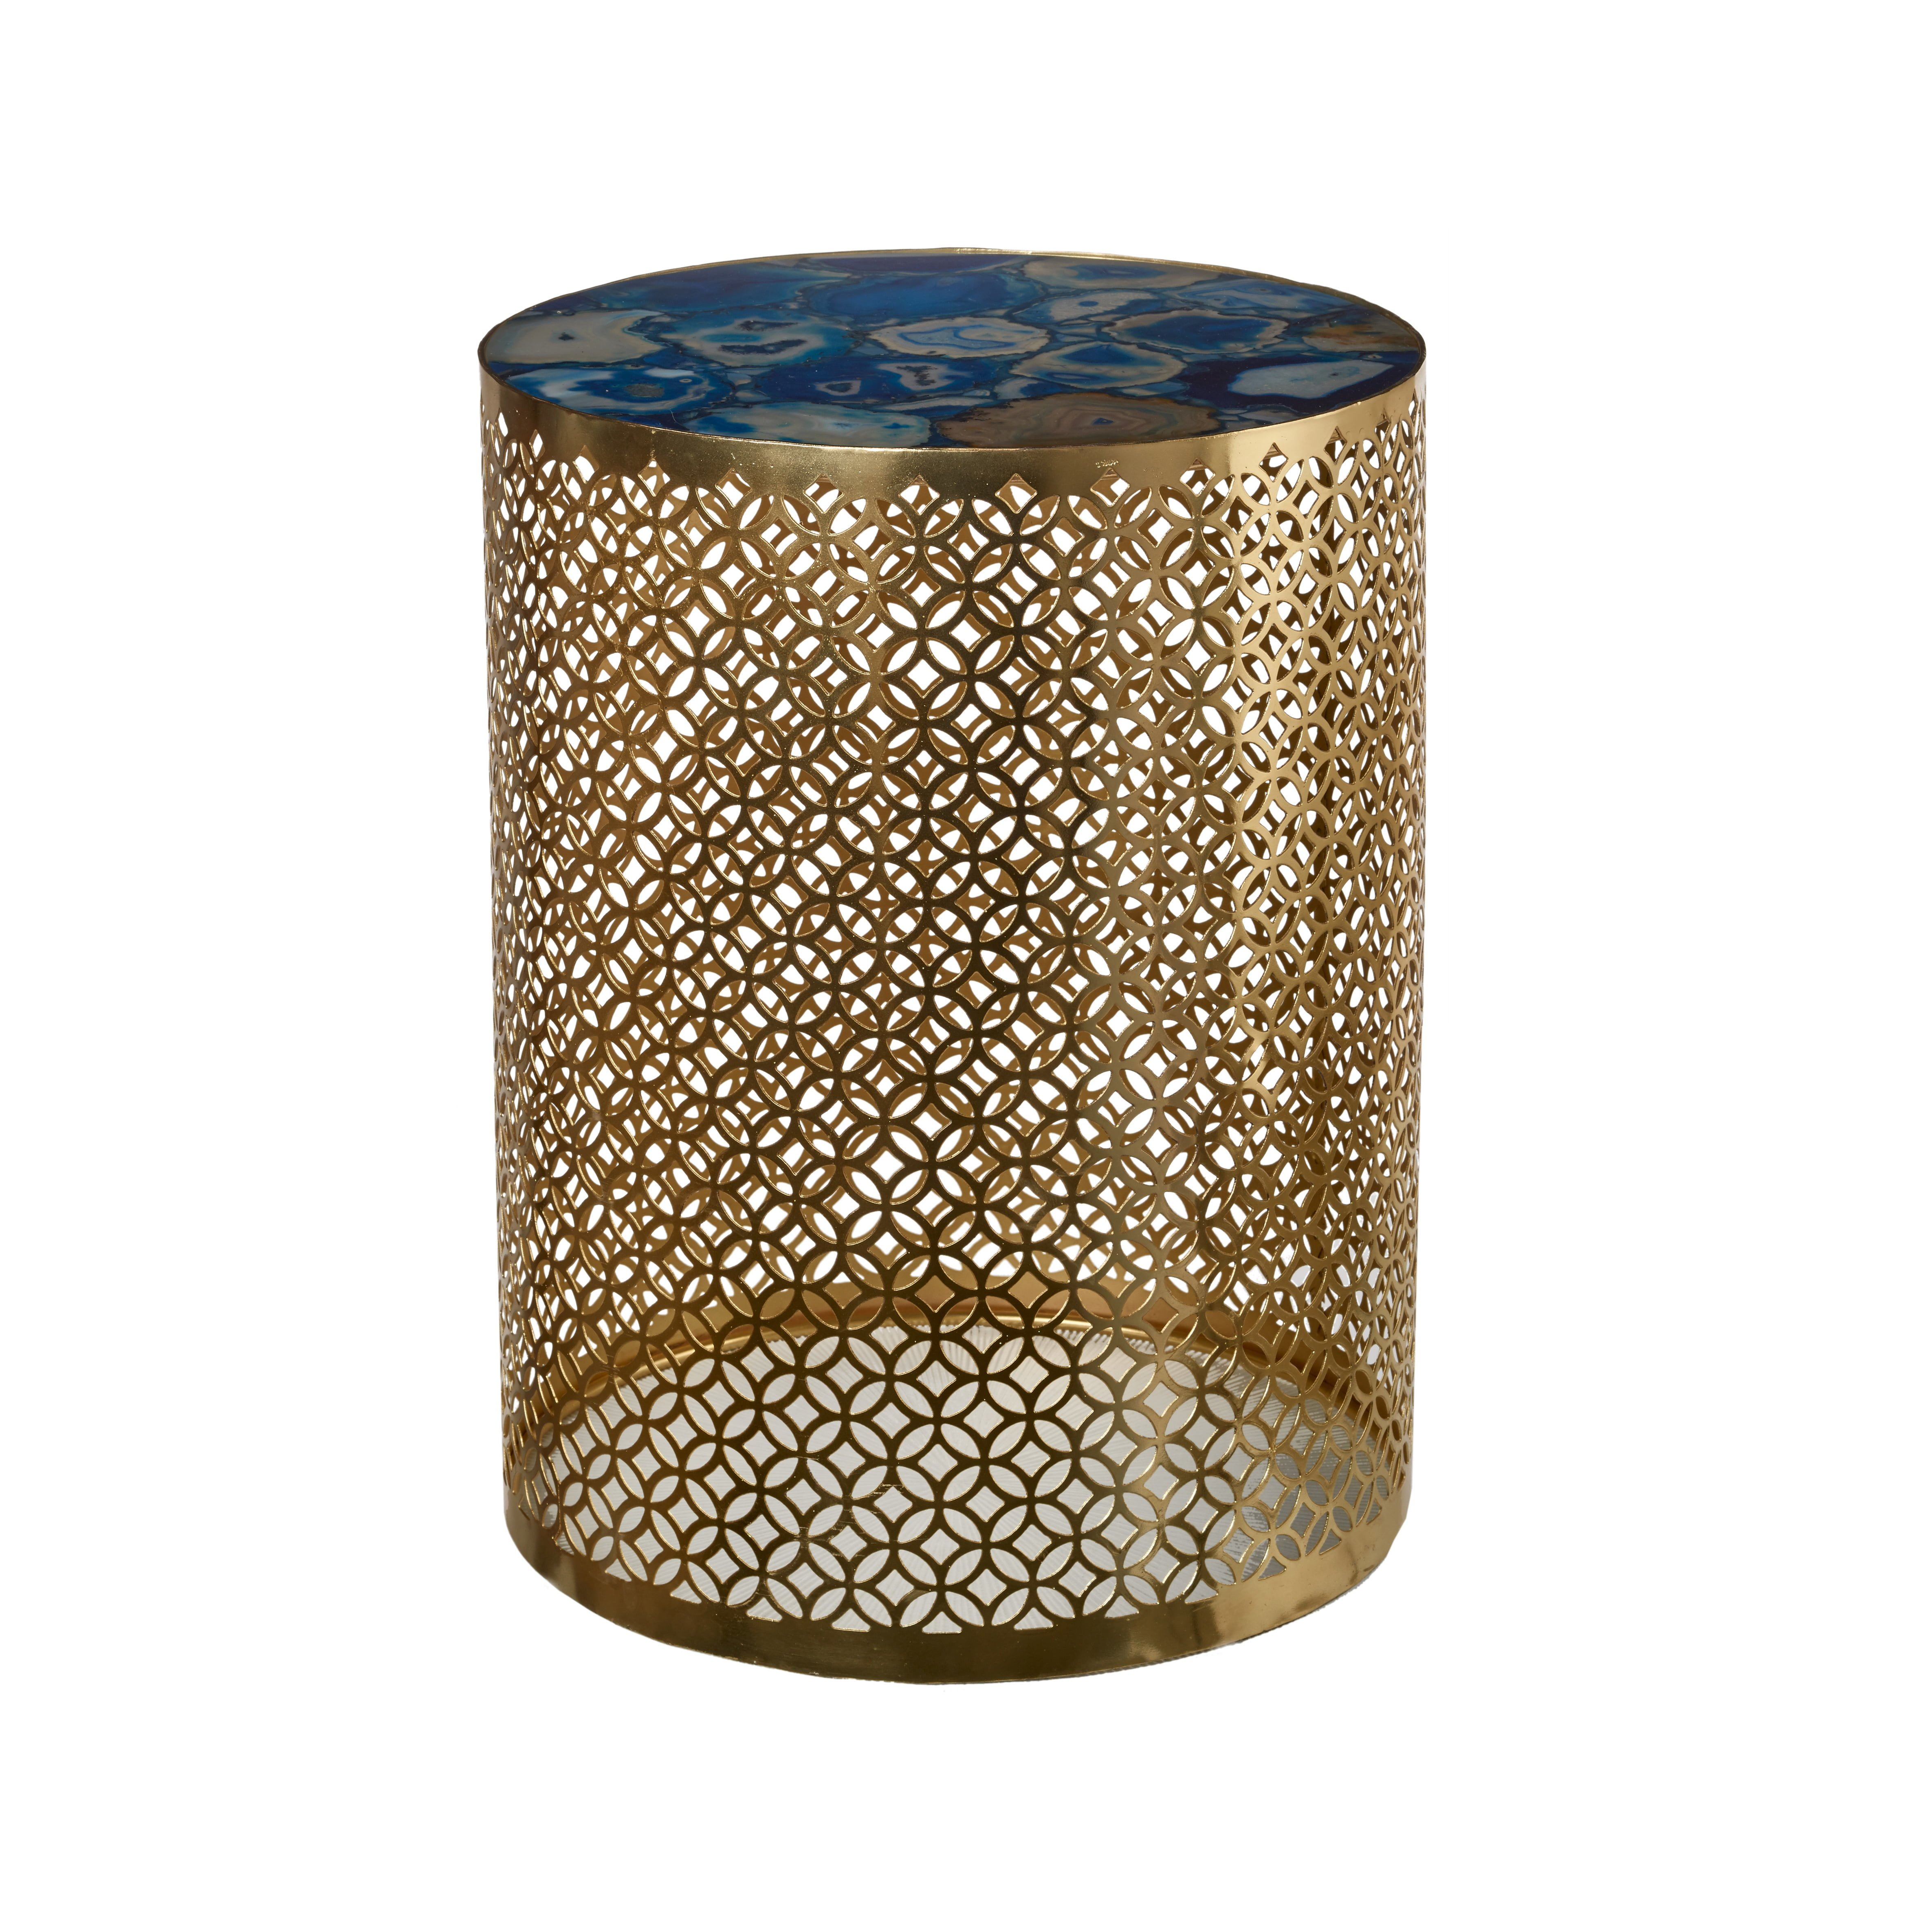 Exquisite round side table with golden metal base and decorative blue agate stone top